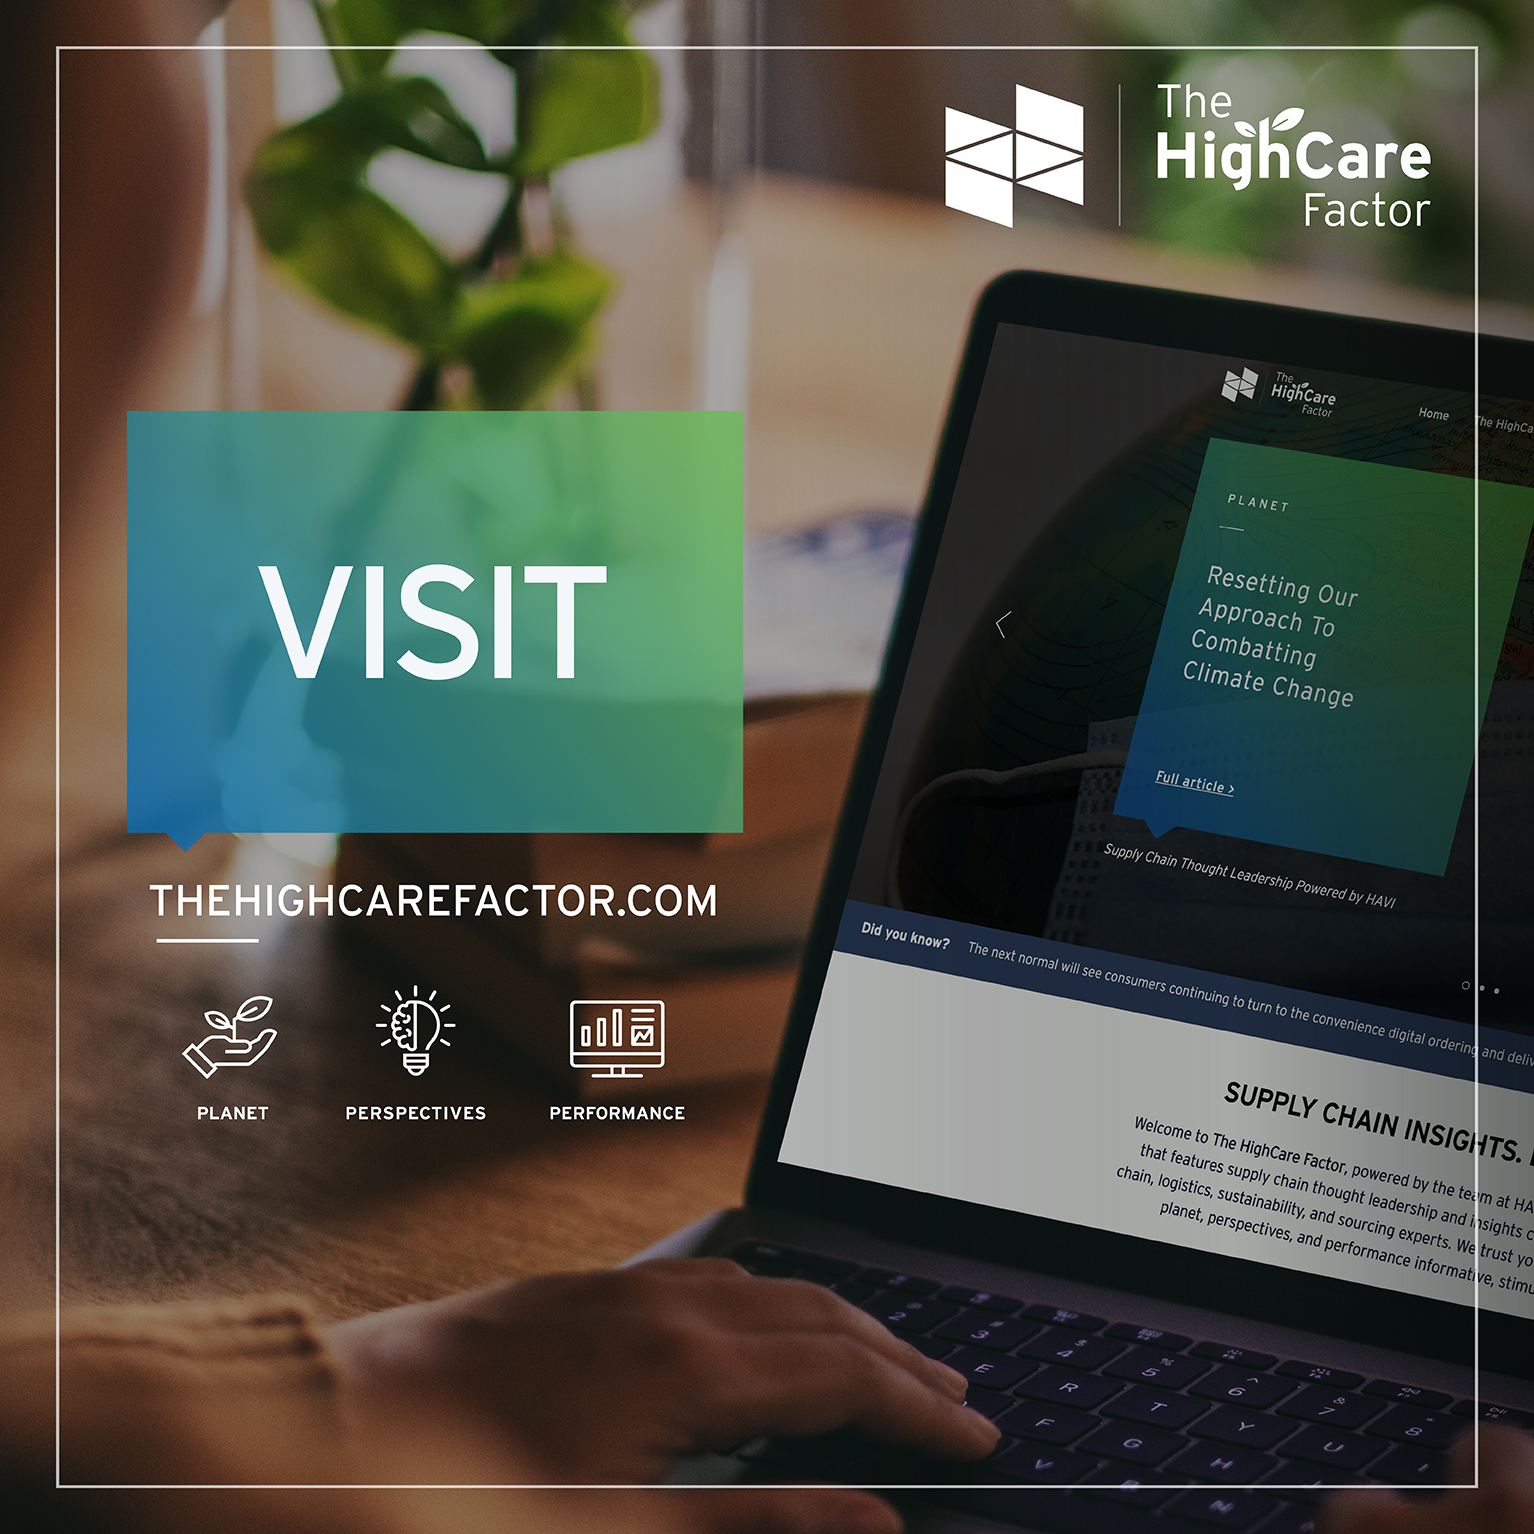 VISIT THE HIGHCARE FACTOR